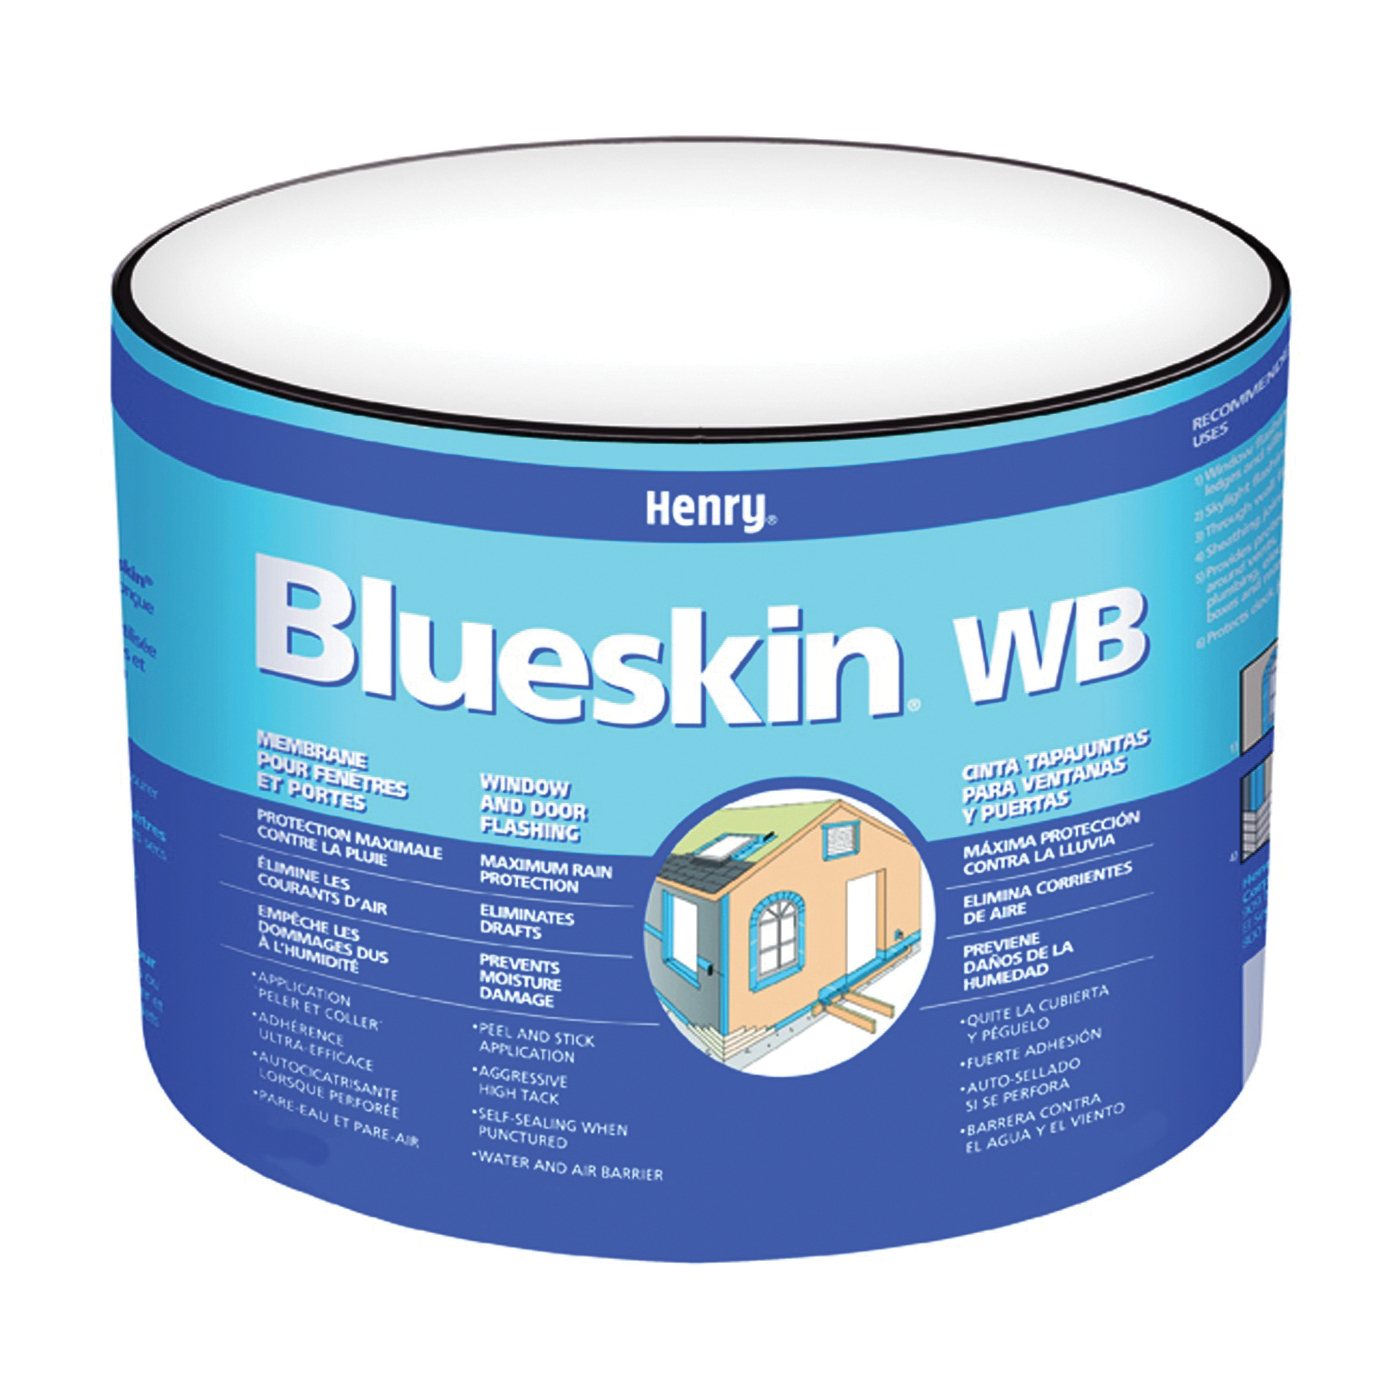 Picture of Henry Blueskin WB25 HE201WB968 Window and Door Flashing, 75 ft L, 6 in W, Paper, Blue, Self Adhesive